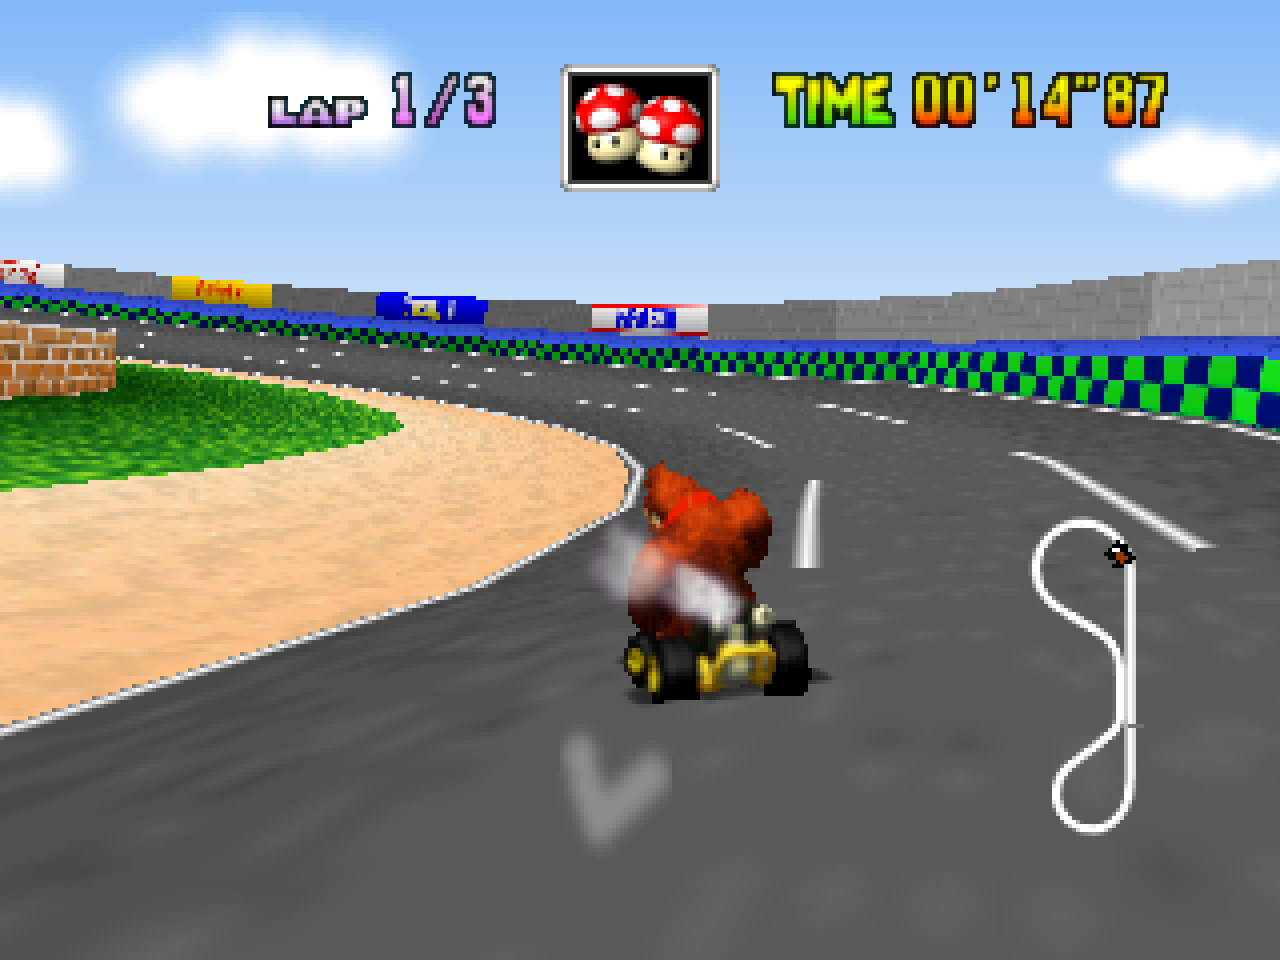 https://s3.eu-west-3.amazonaws.com/games.anthony-dessalles.com/Mario Kart 64 N64 2020 - Screenshots/Mario Kart 64-201118-215854.png